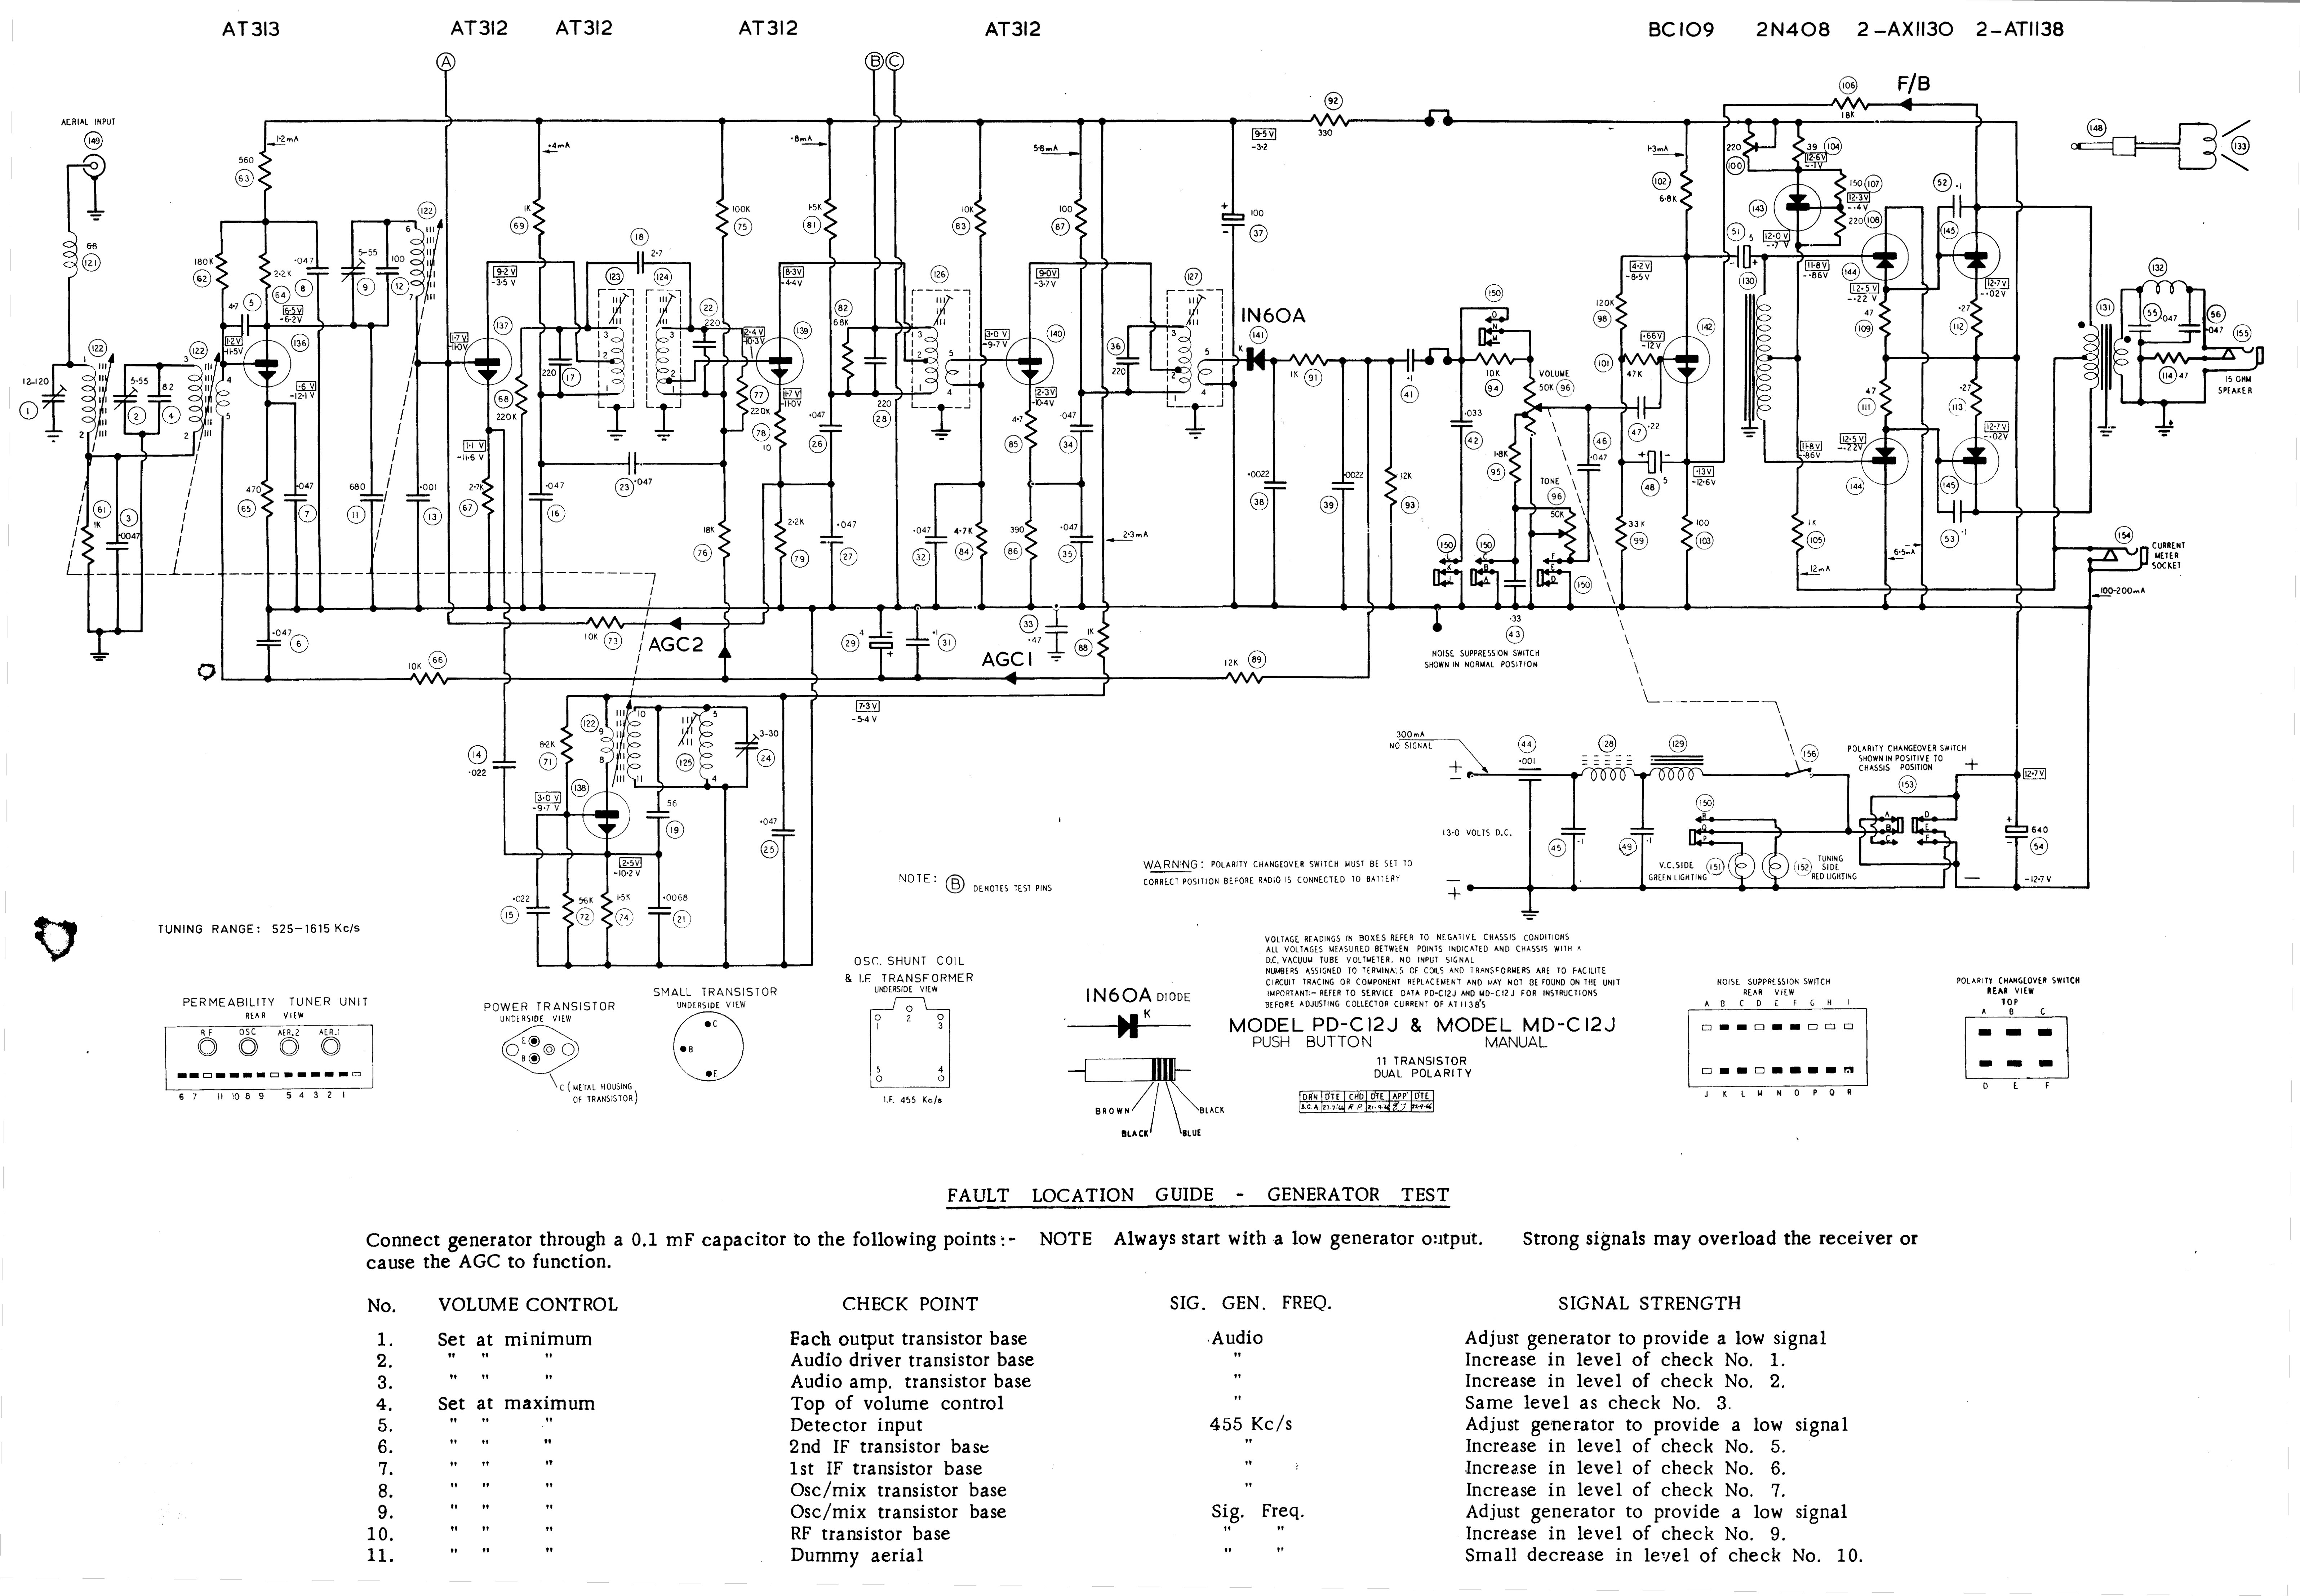 Schematic Centre Circuit Diagram Year 2 1967 Gm Air Chief Pd C12j Md Car Radio Board